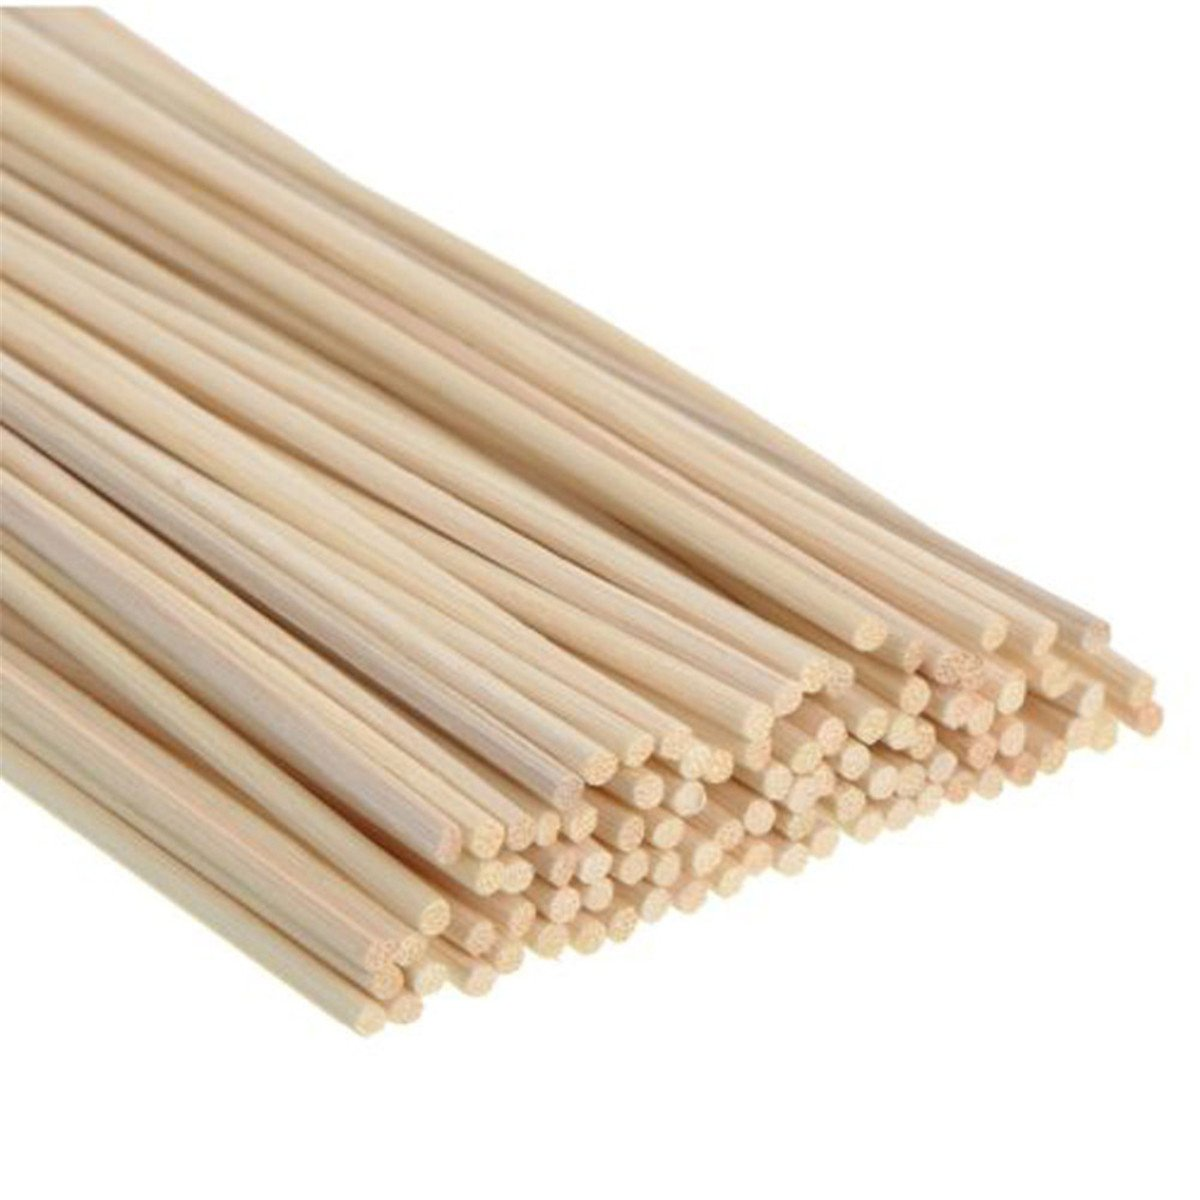 LKXHarleya 50PCS Reed Sticks Natural Rattan Reed Diffuser Replacement Stick 7 Inches3.5MM